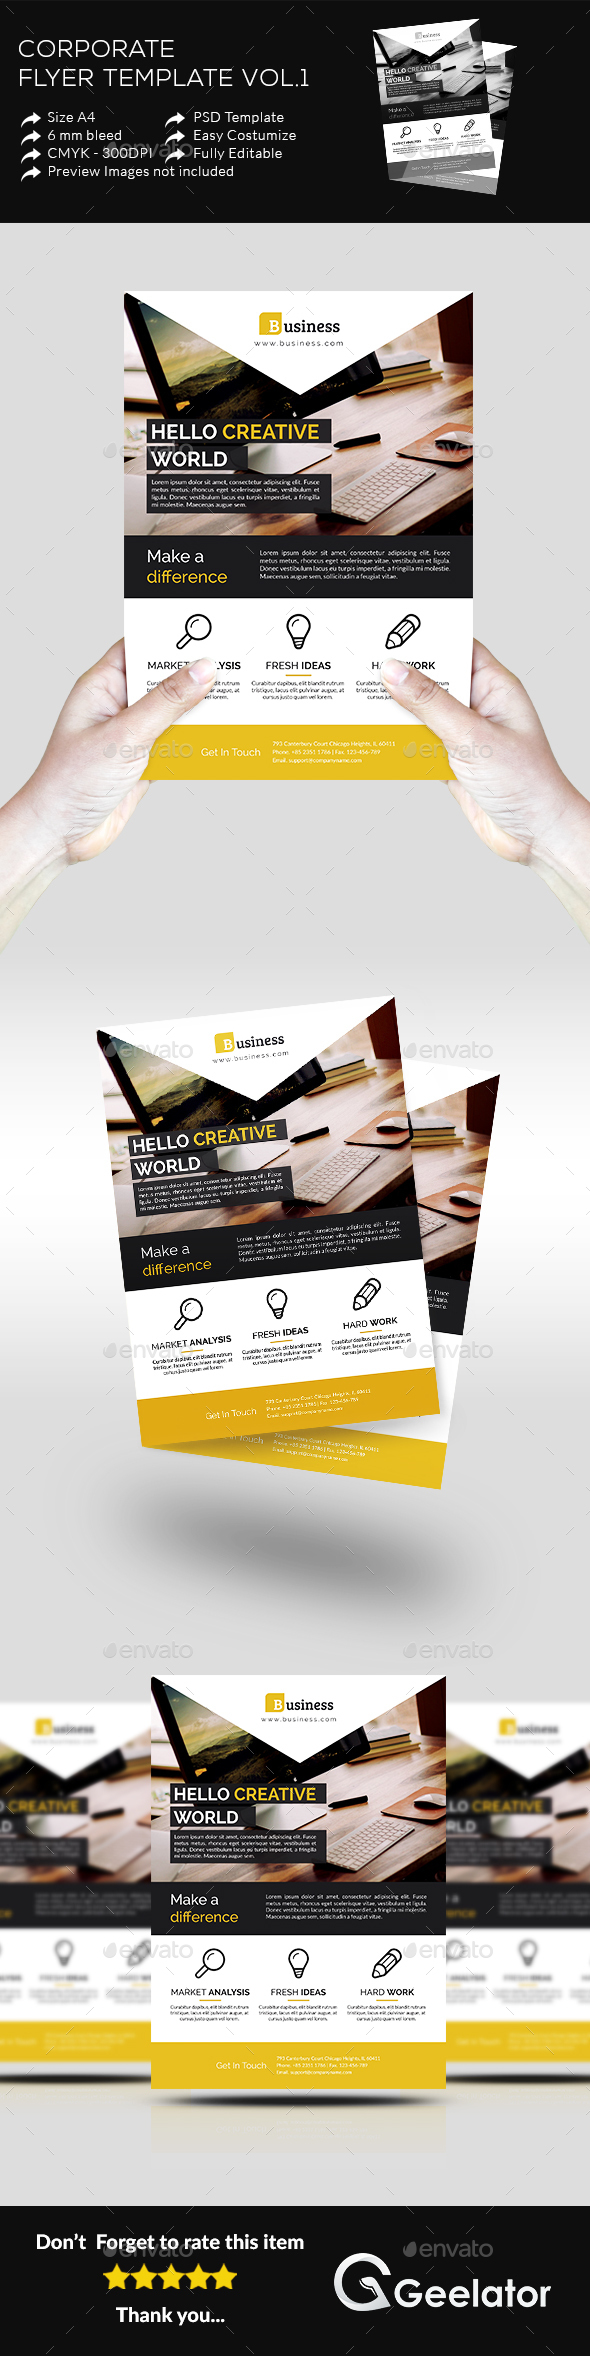 Corporate Flyer Template Vol 1 - Corporate Flyers